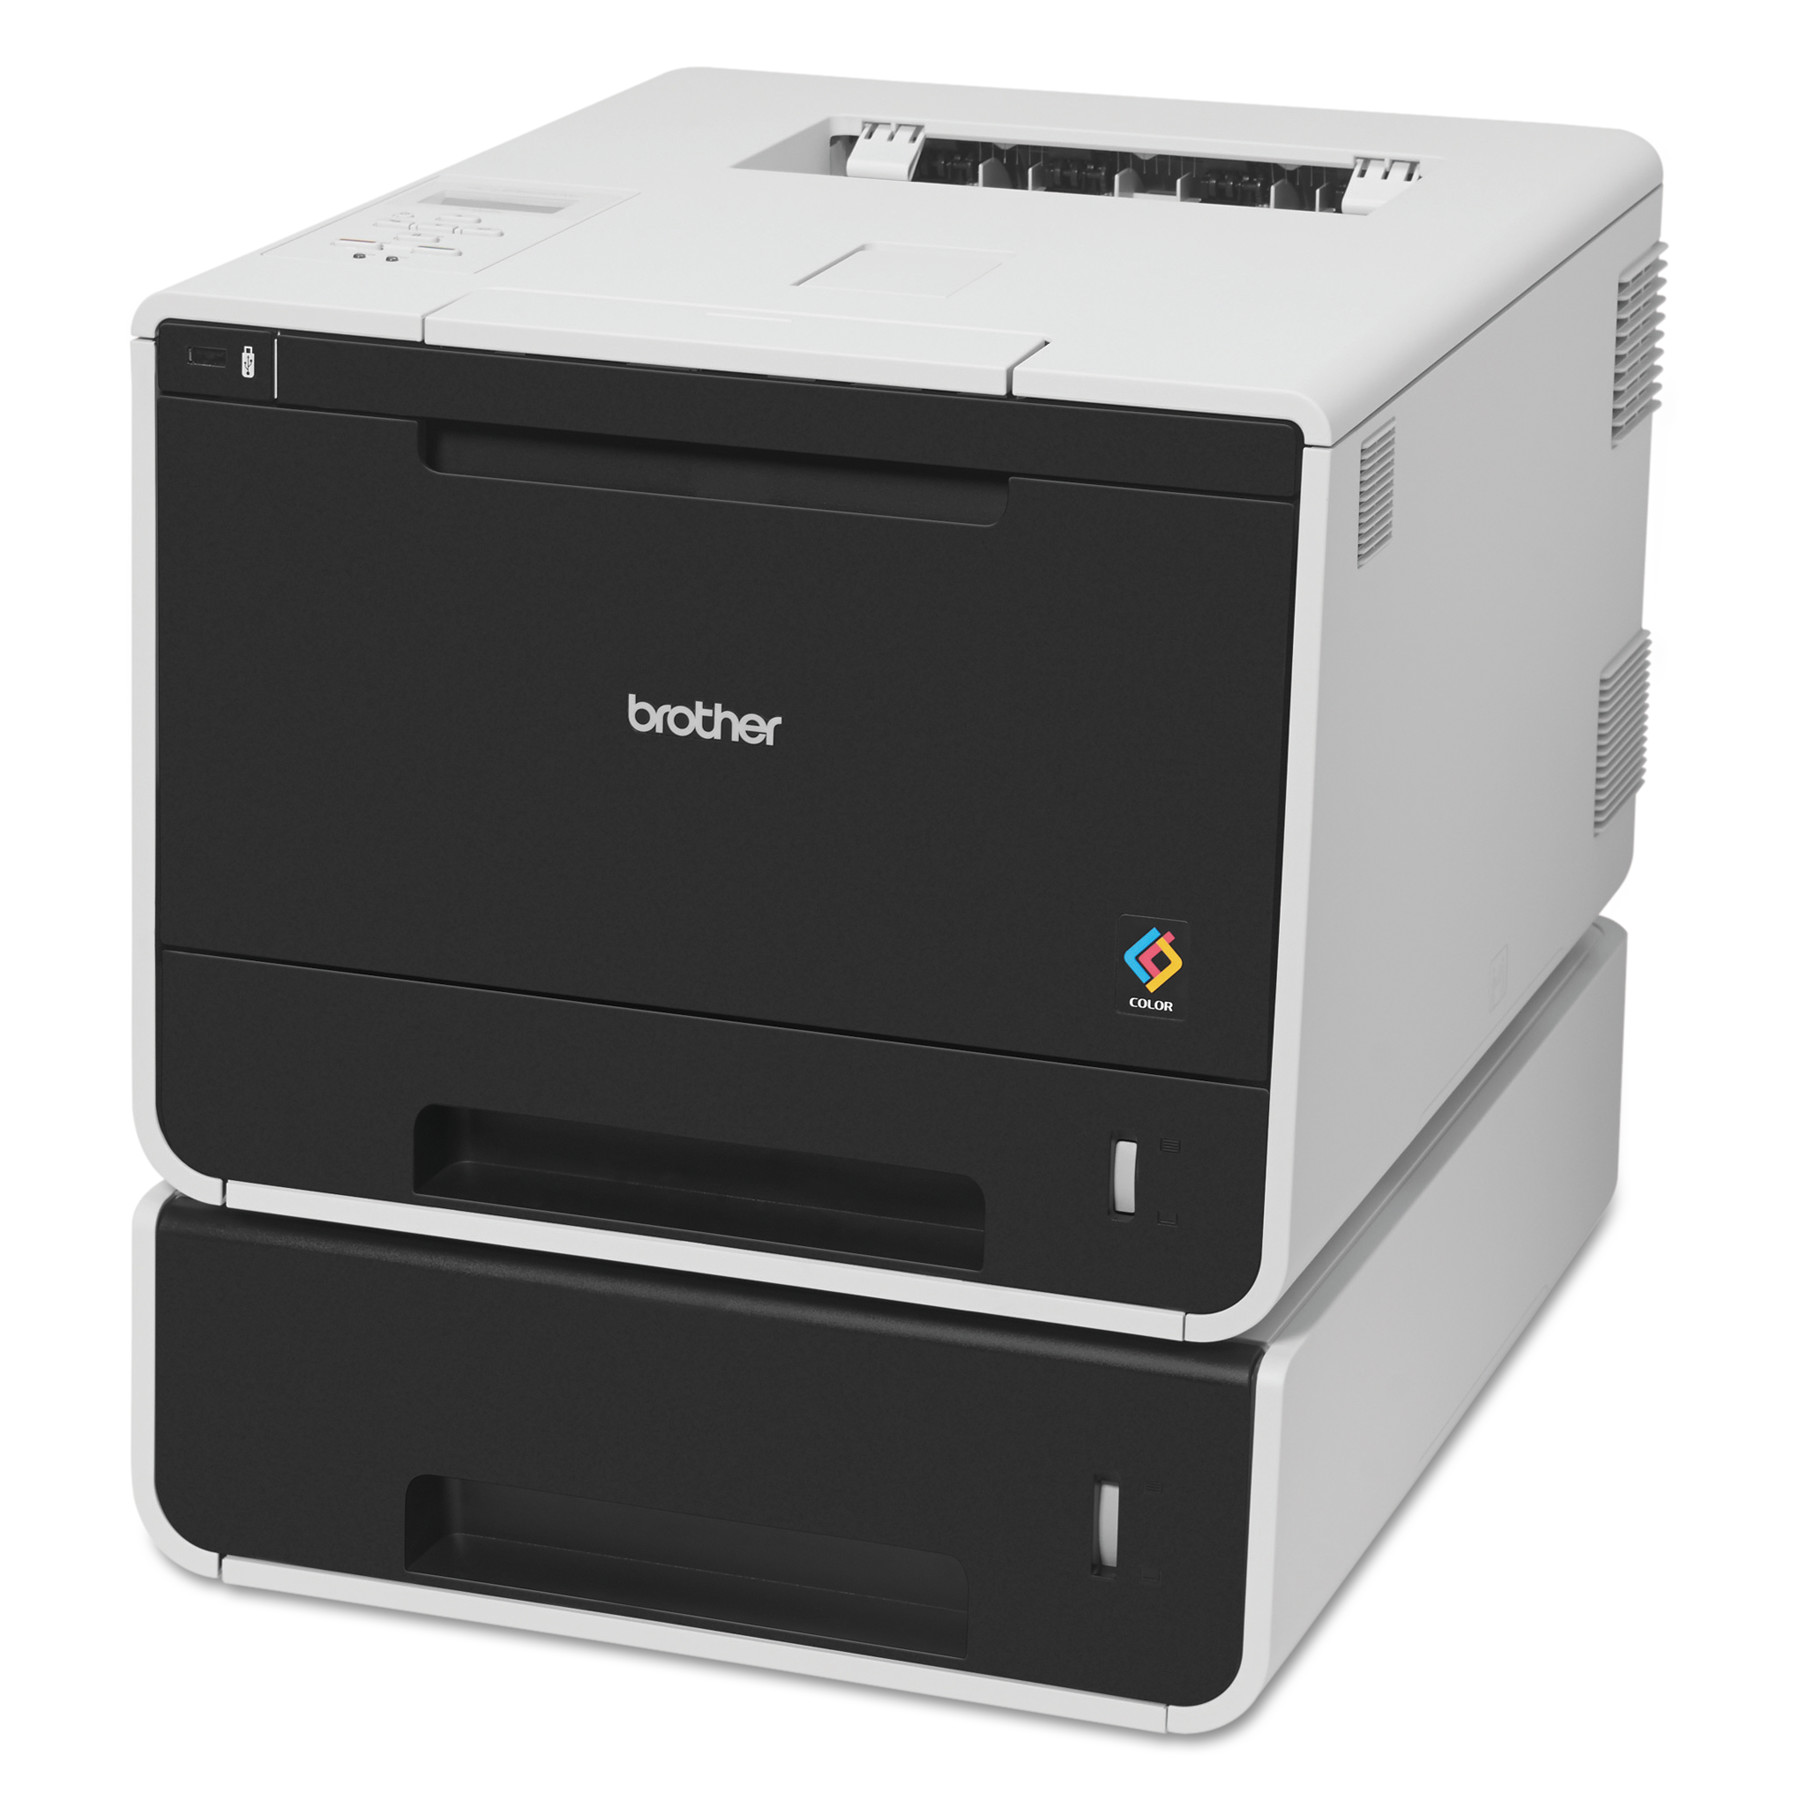 Color printers laser - Brother Hl L8350cdwt Color Laser Printer With Wireless Networking And Dual Paper Trays Walmart Com